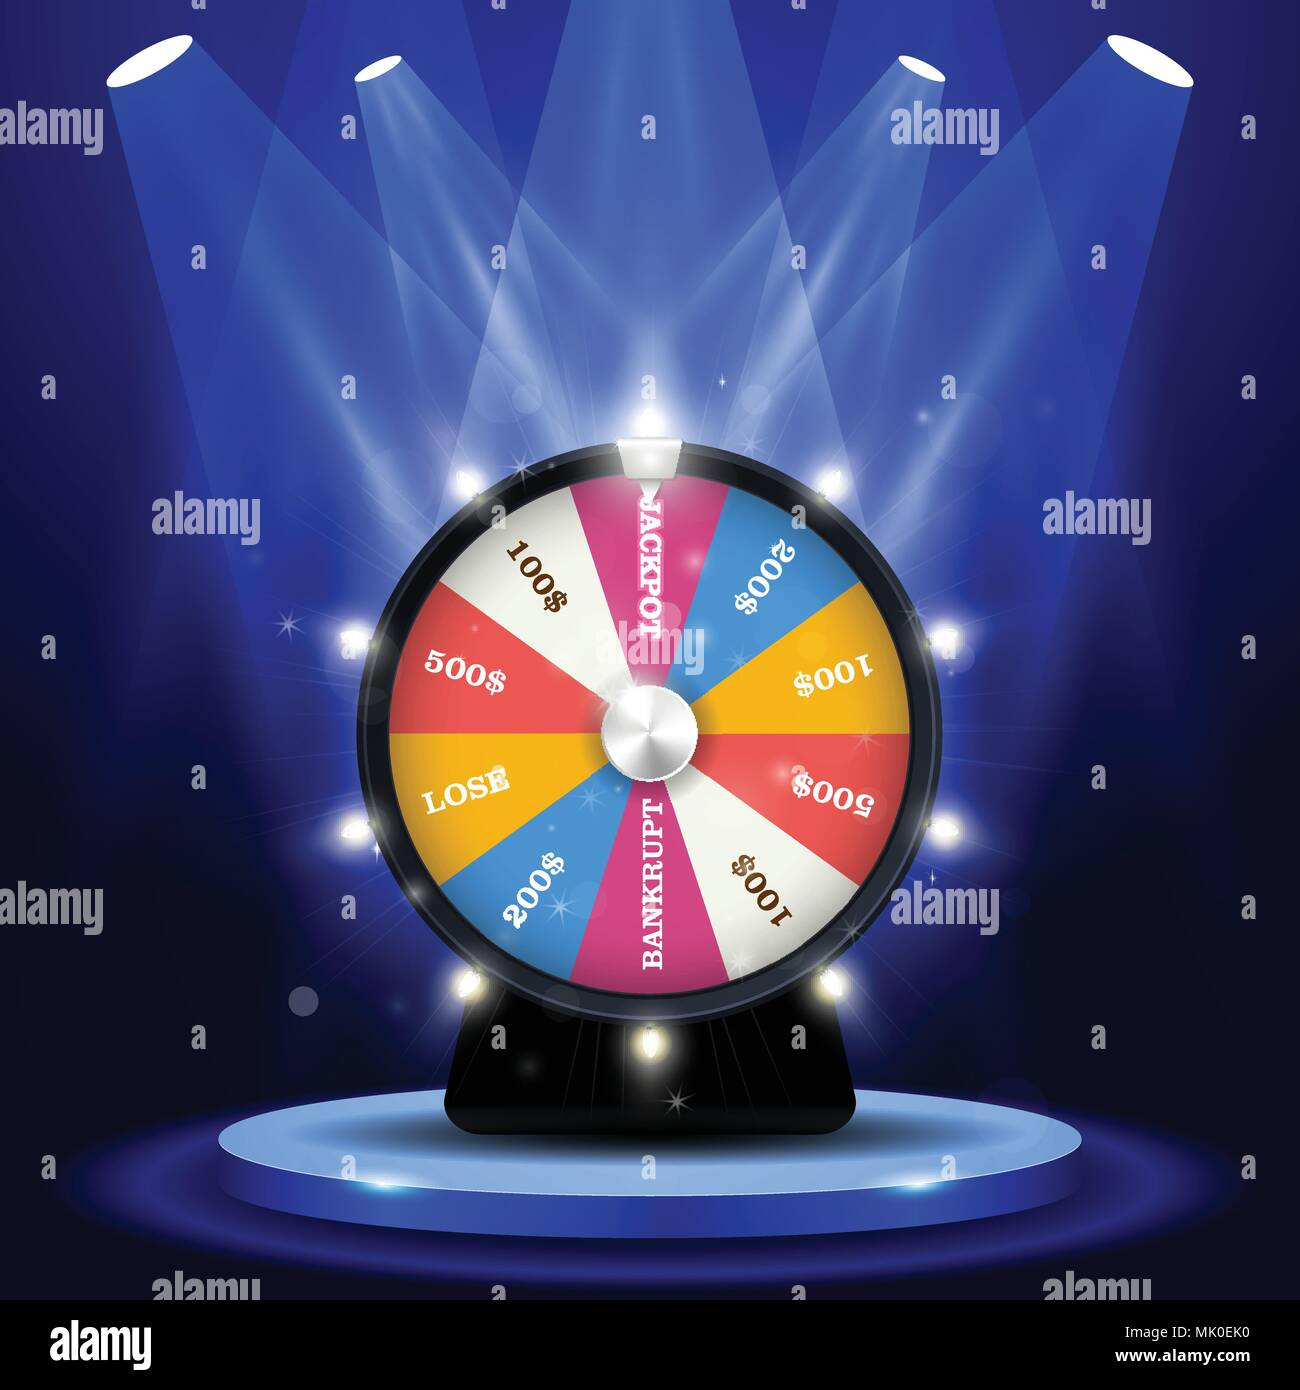 Lottery big win - jackpot on wheel of fortune, gambling concept - Stock Vector